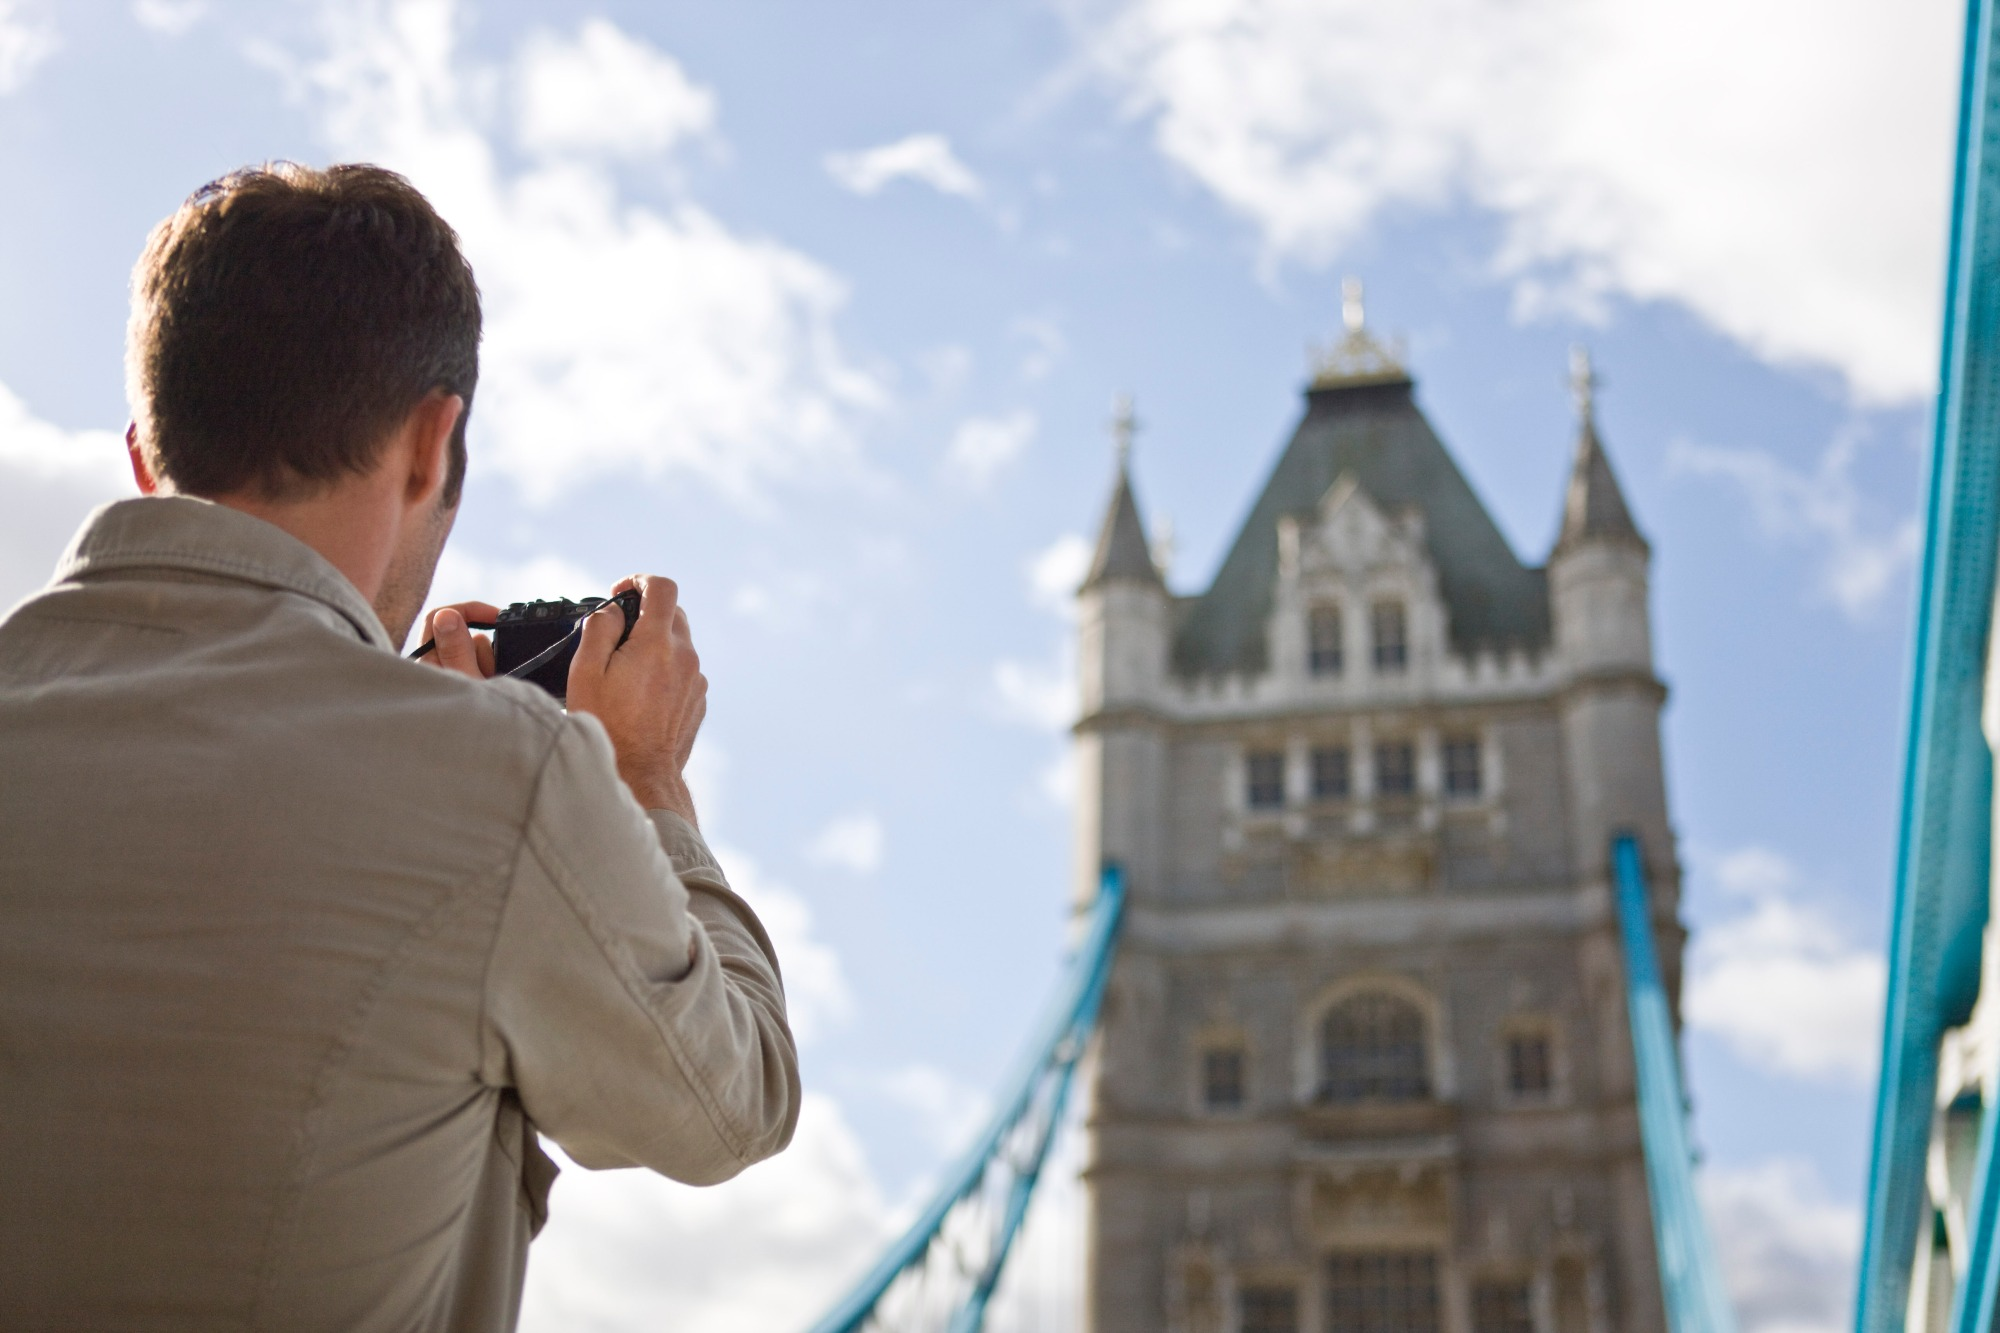 Media Bakery ID: LUV0016942 A mid-adult man taking a photograph of Tower Bridge